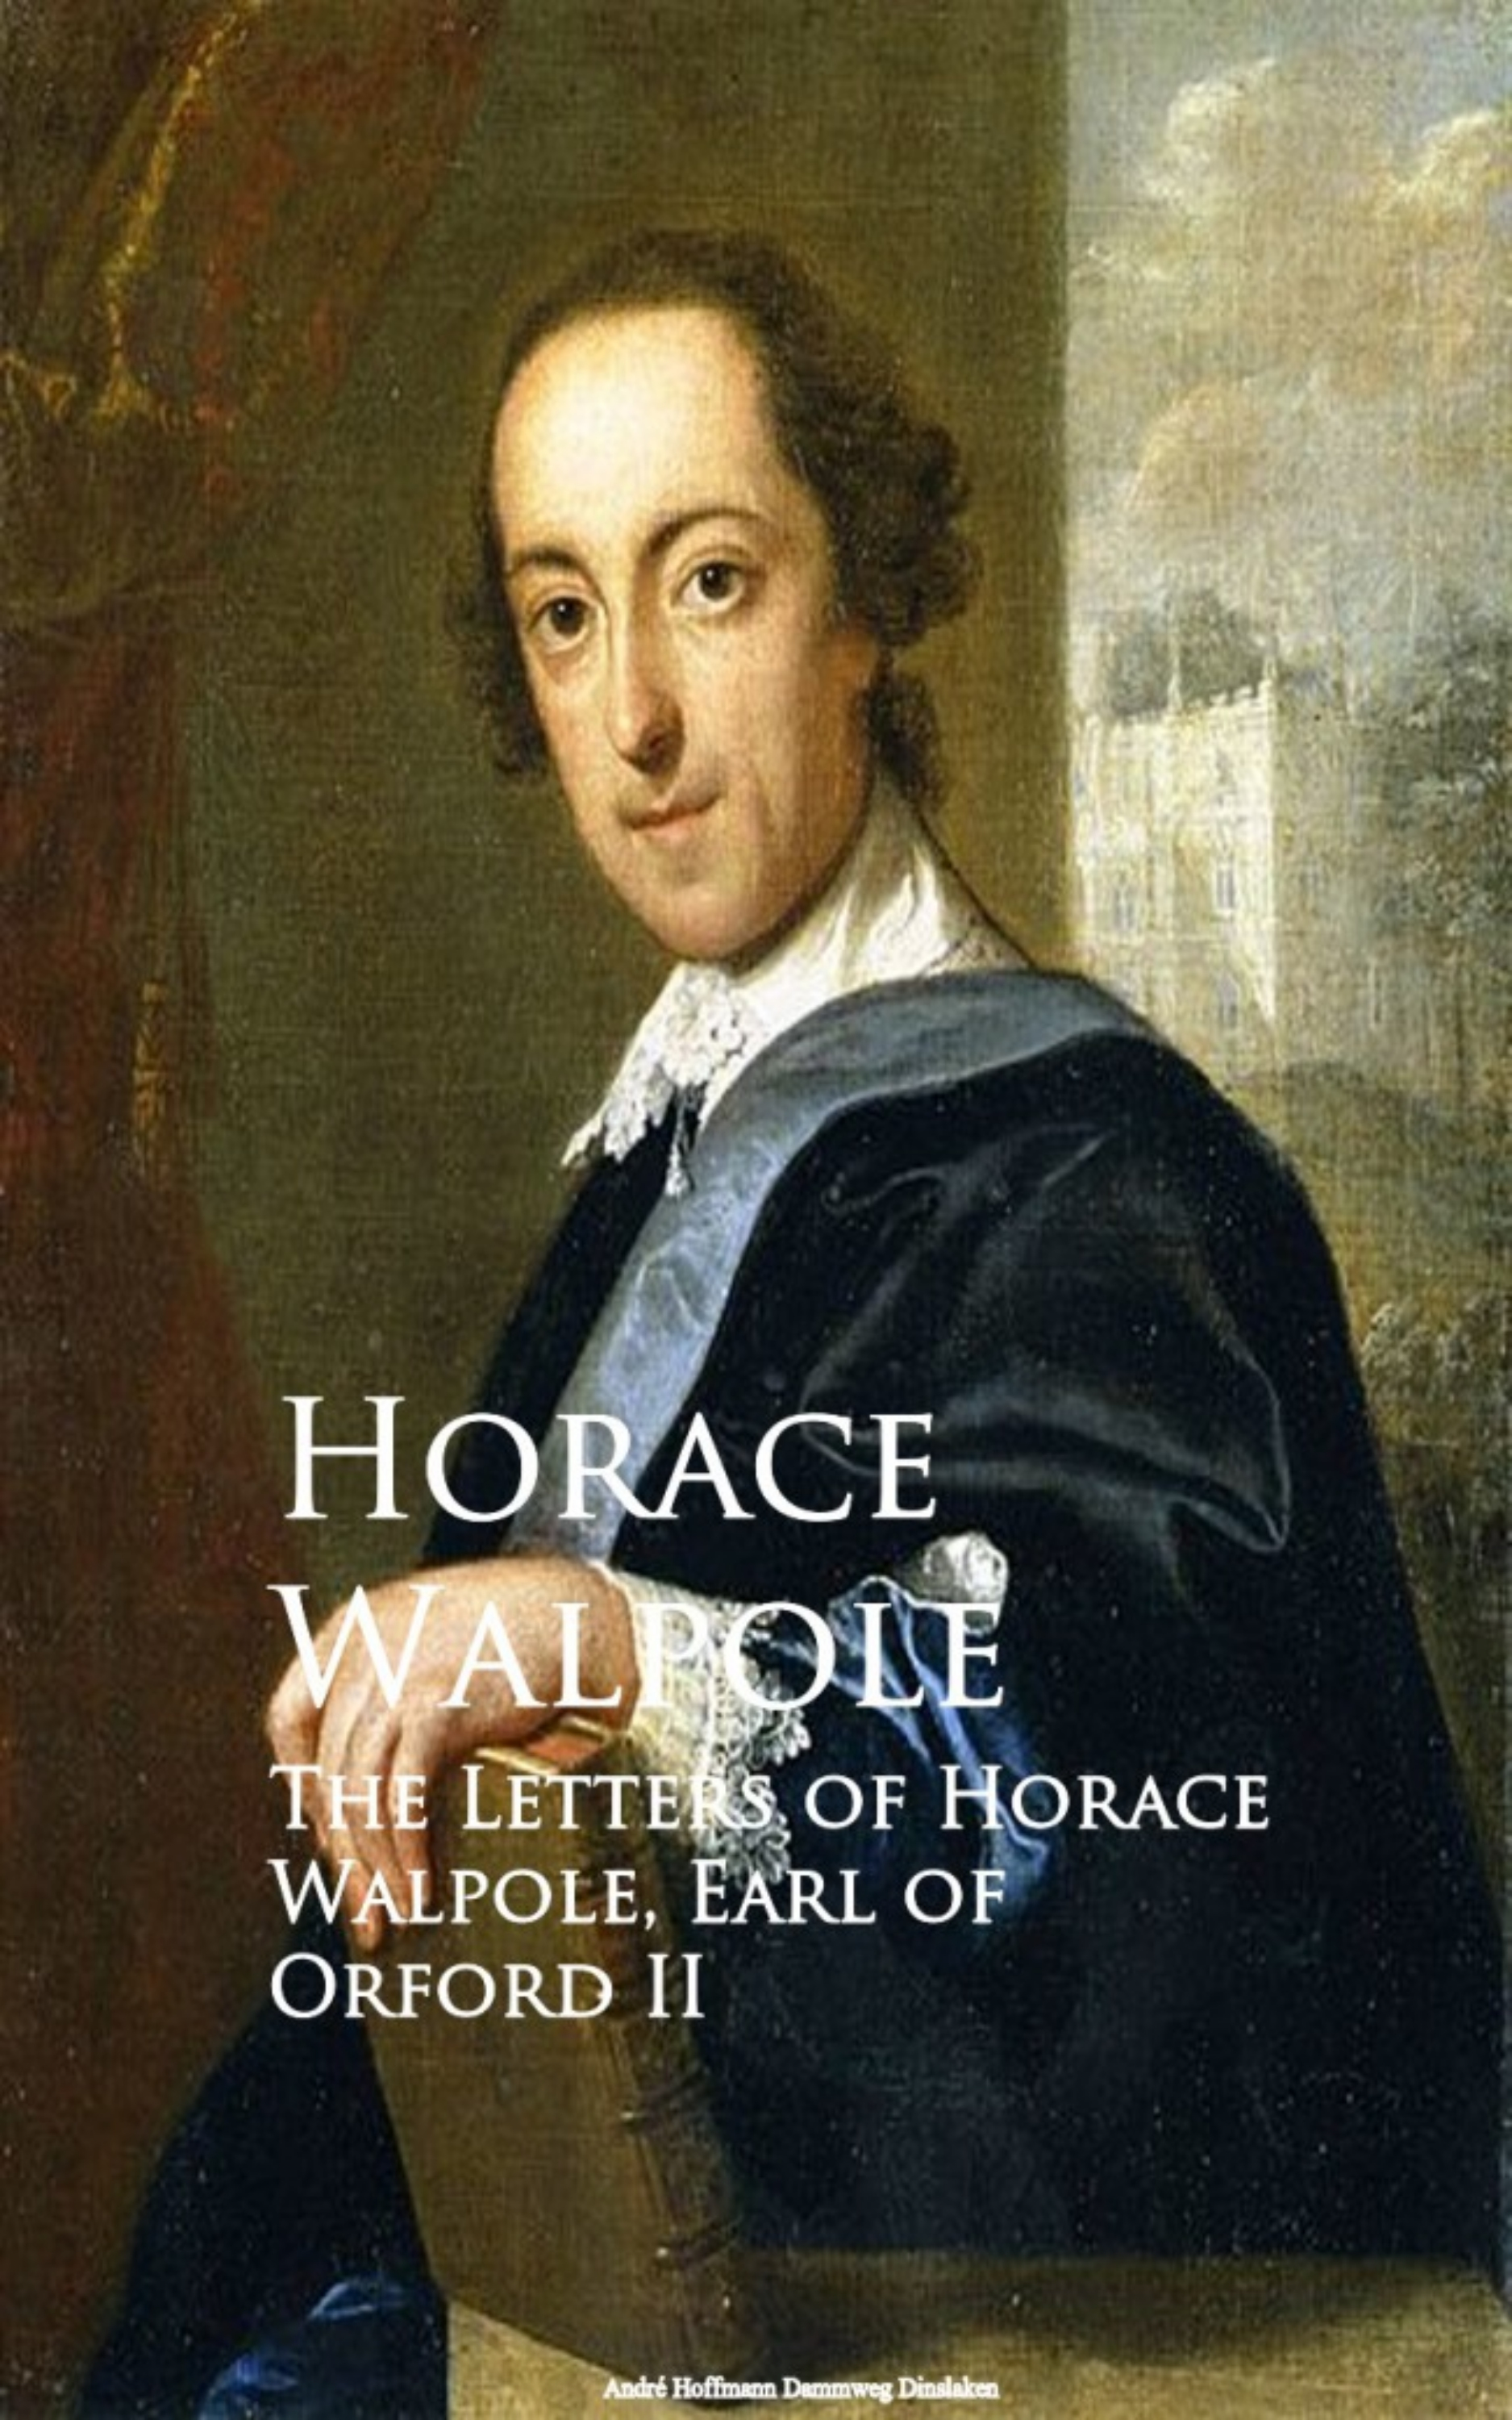 Horace Walpole The Letters of Horace Walpole, Earl of Orford II the odes of horace